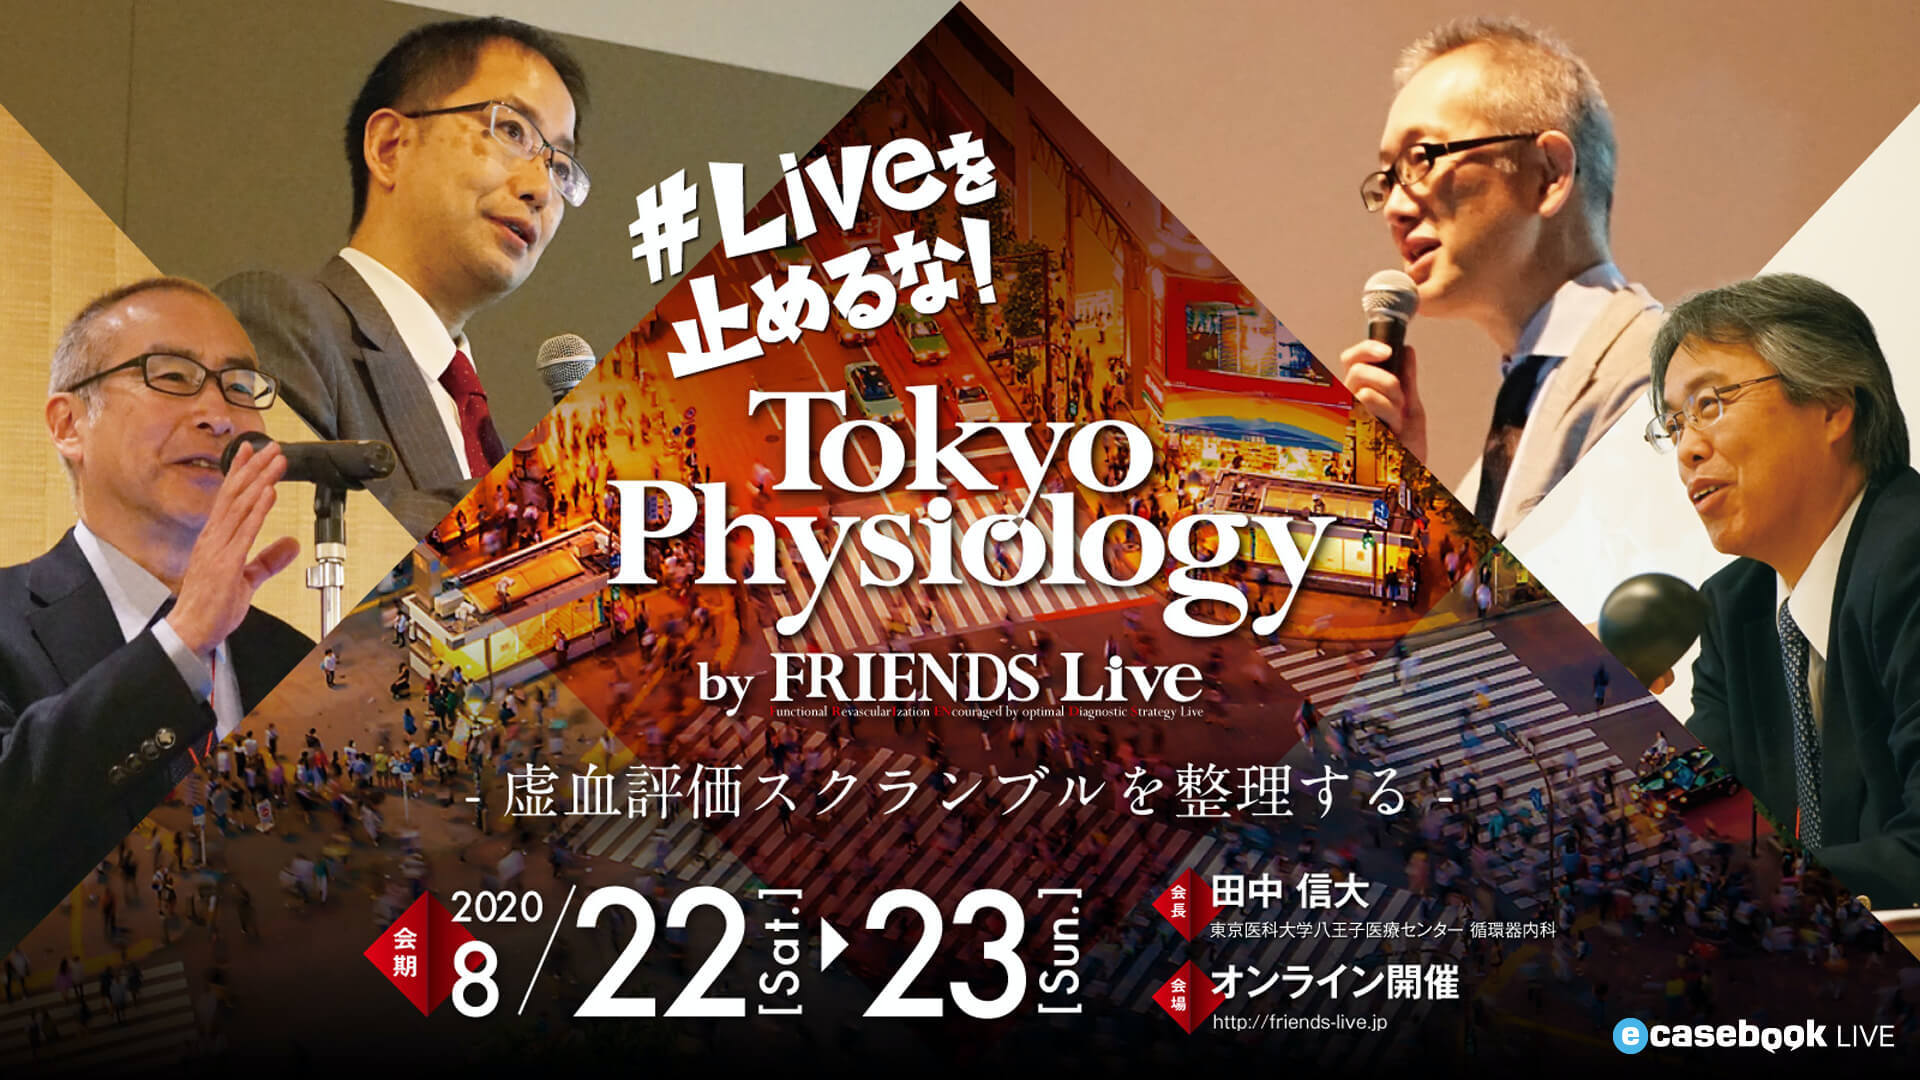 Tokyo Physiology 2020 by FRIENDS Live